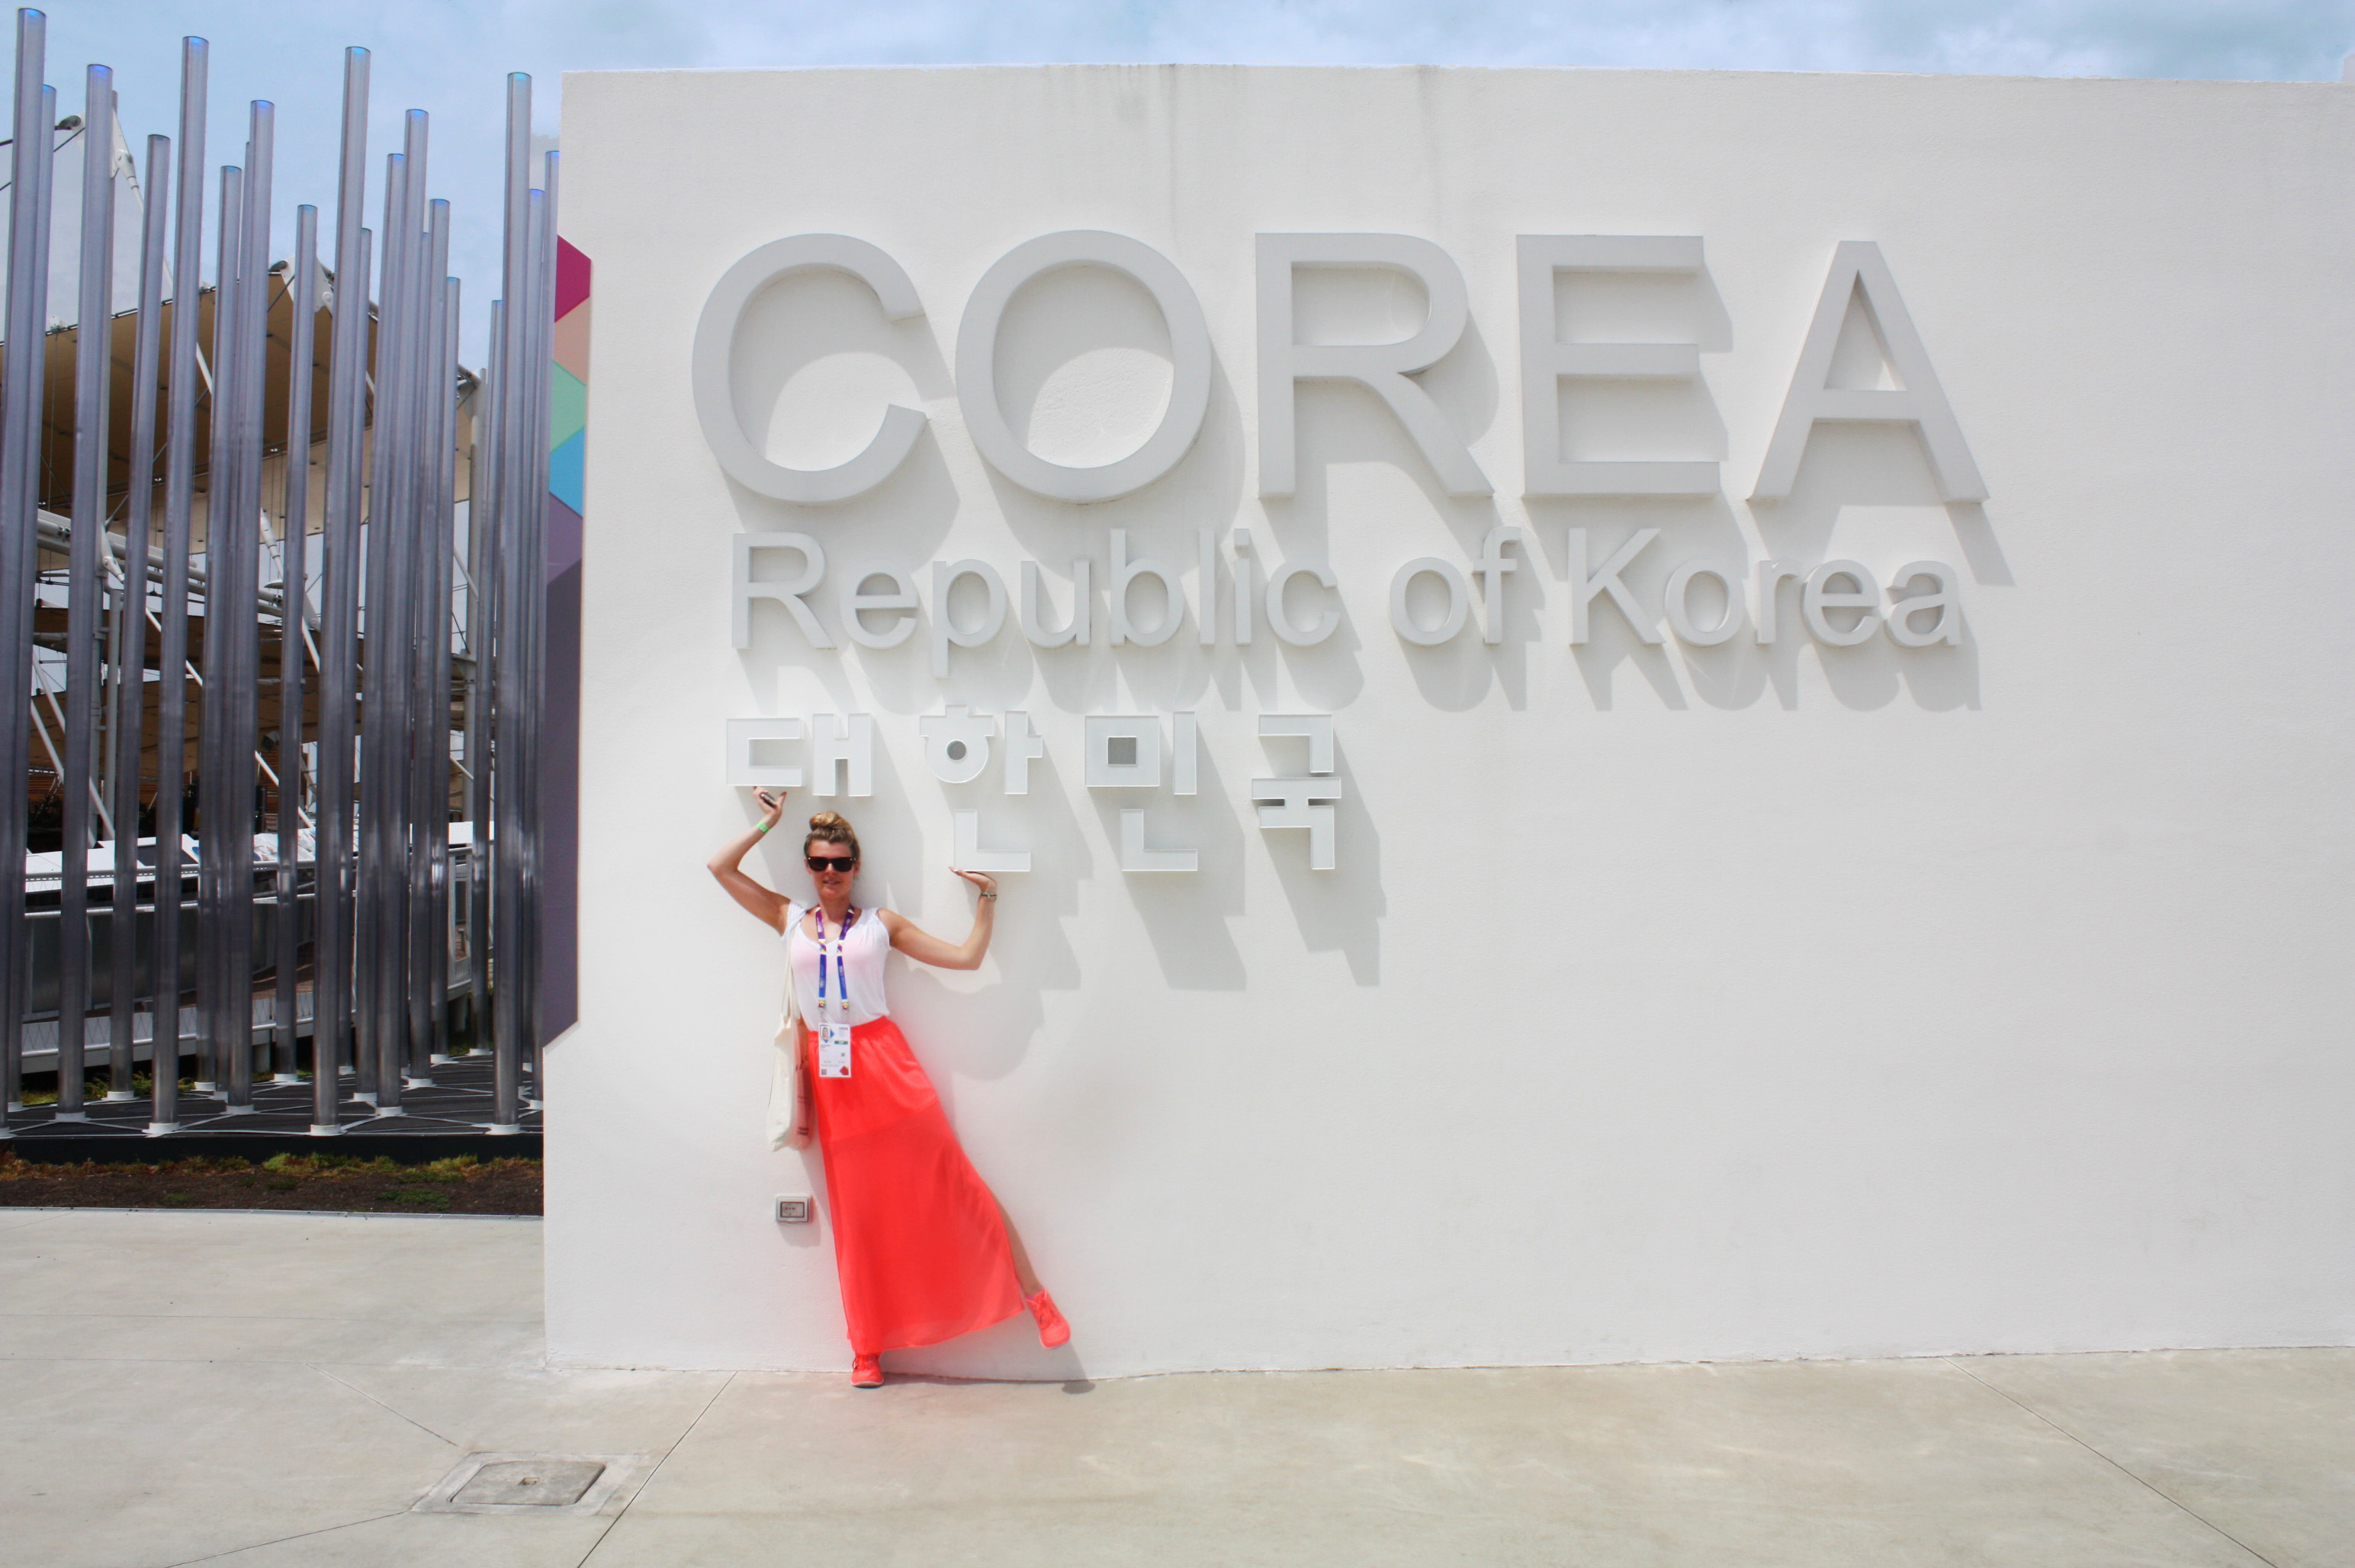 In front of the corean pavillon